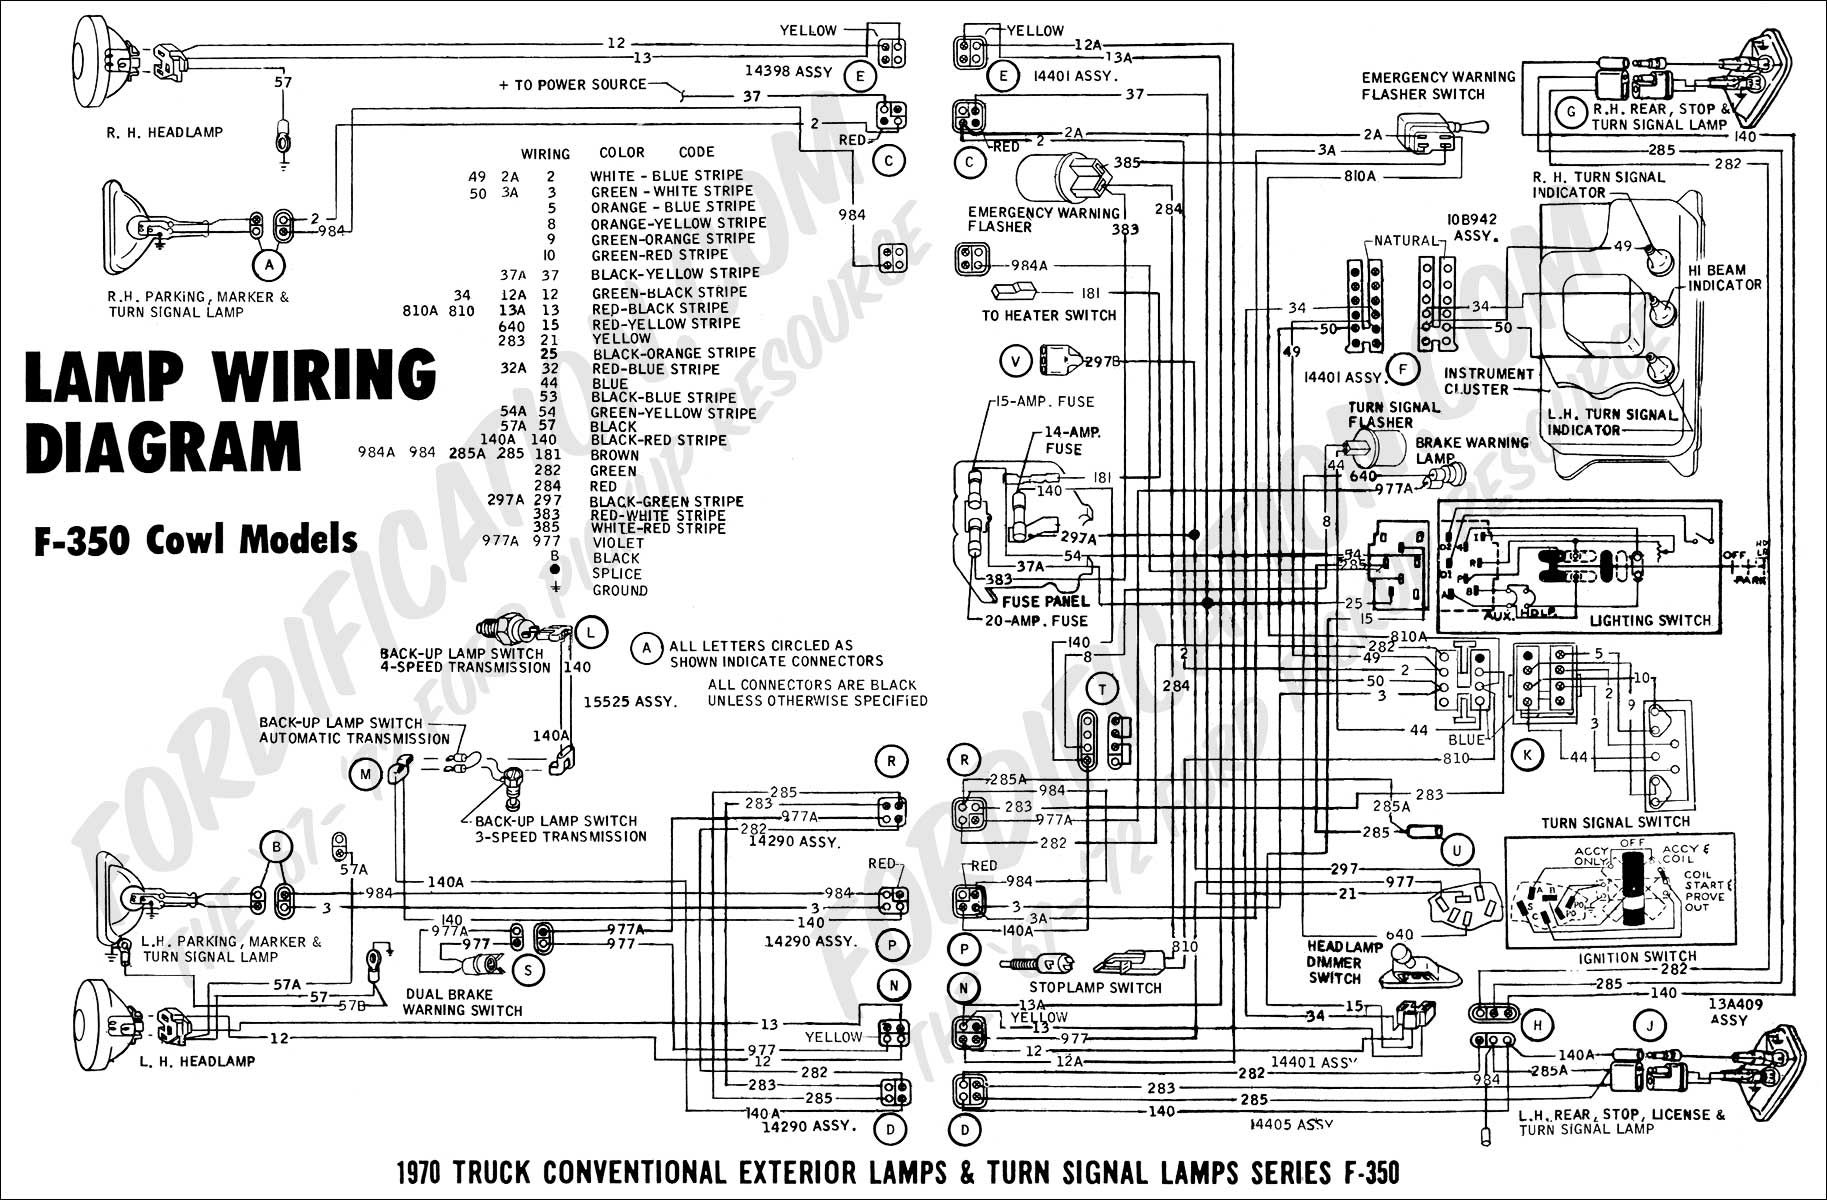 Image Ford Wiring Diagram 91 F350 Wiring Online Wiring Diagram1991 Ford F  350 Wiring Diagram 2 22 Kenmo Lp De… | Electrical diagram, Diagram, Trailer wiring  diagramPinterest